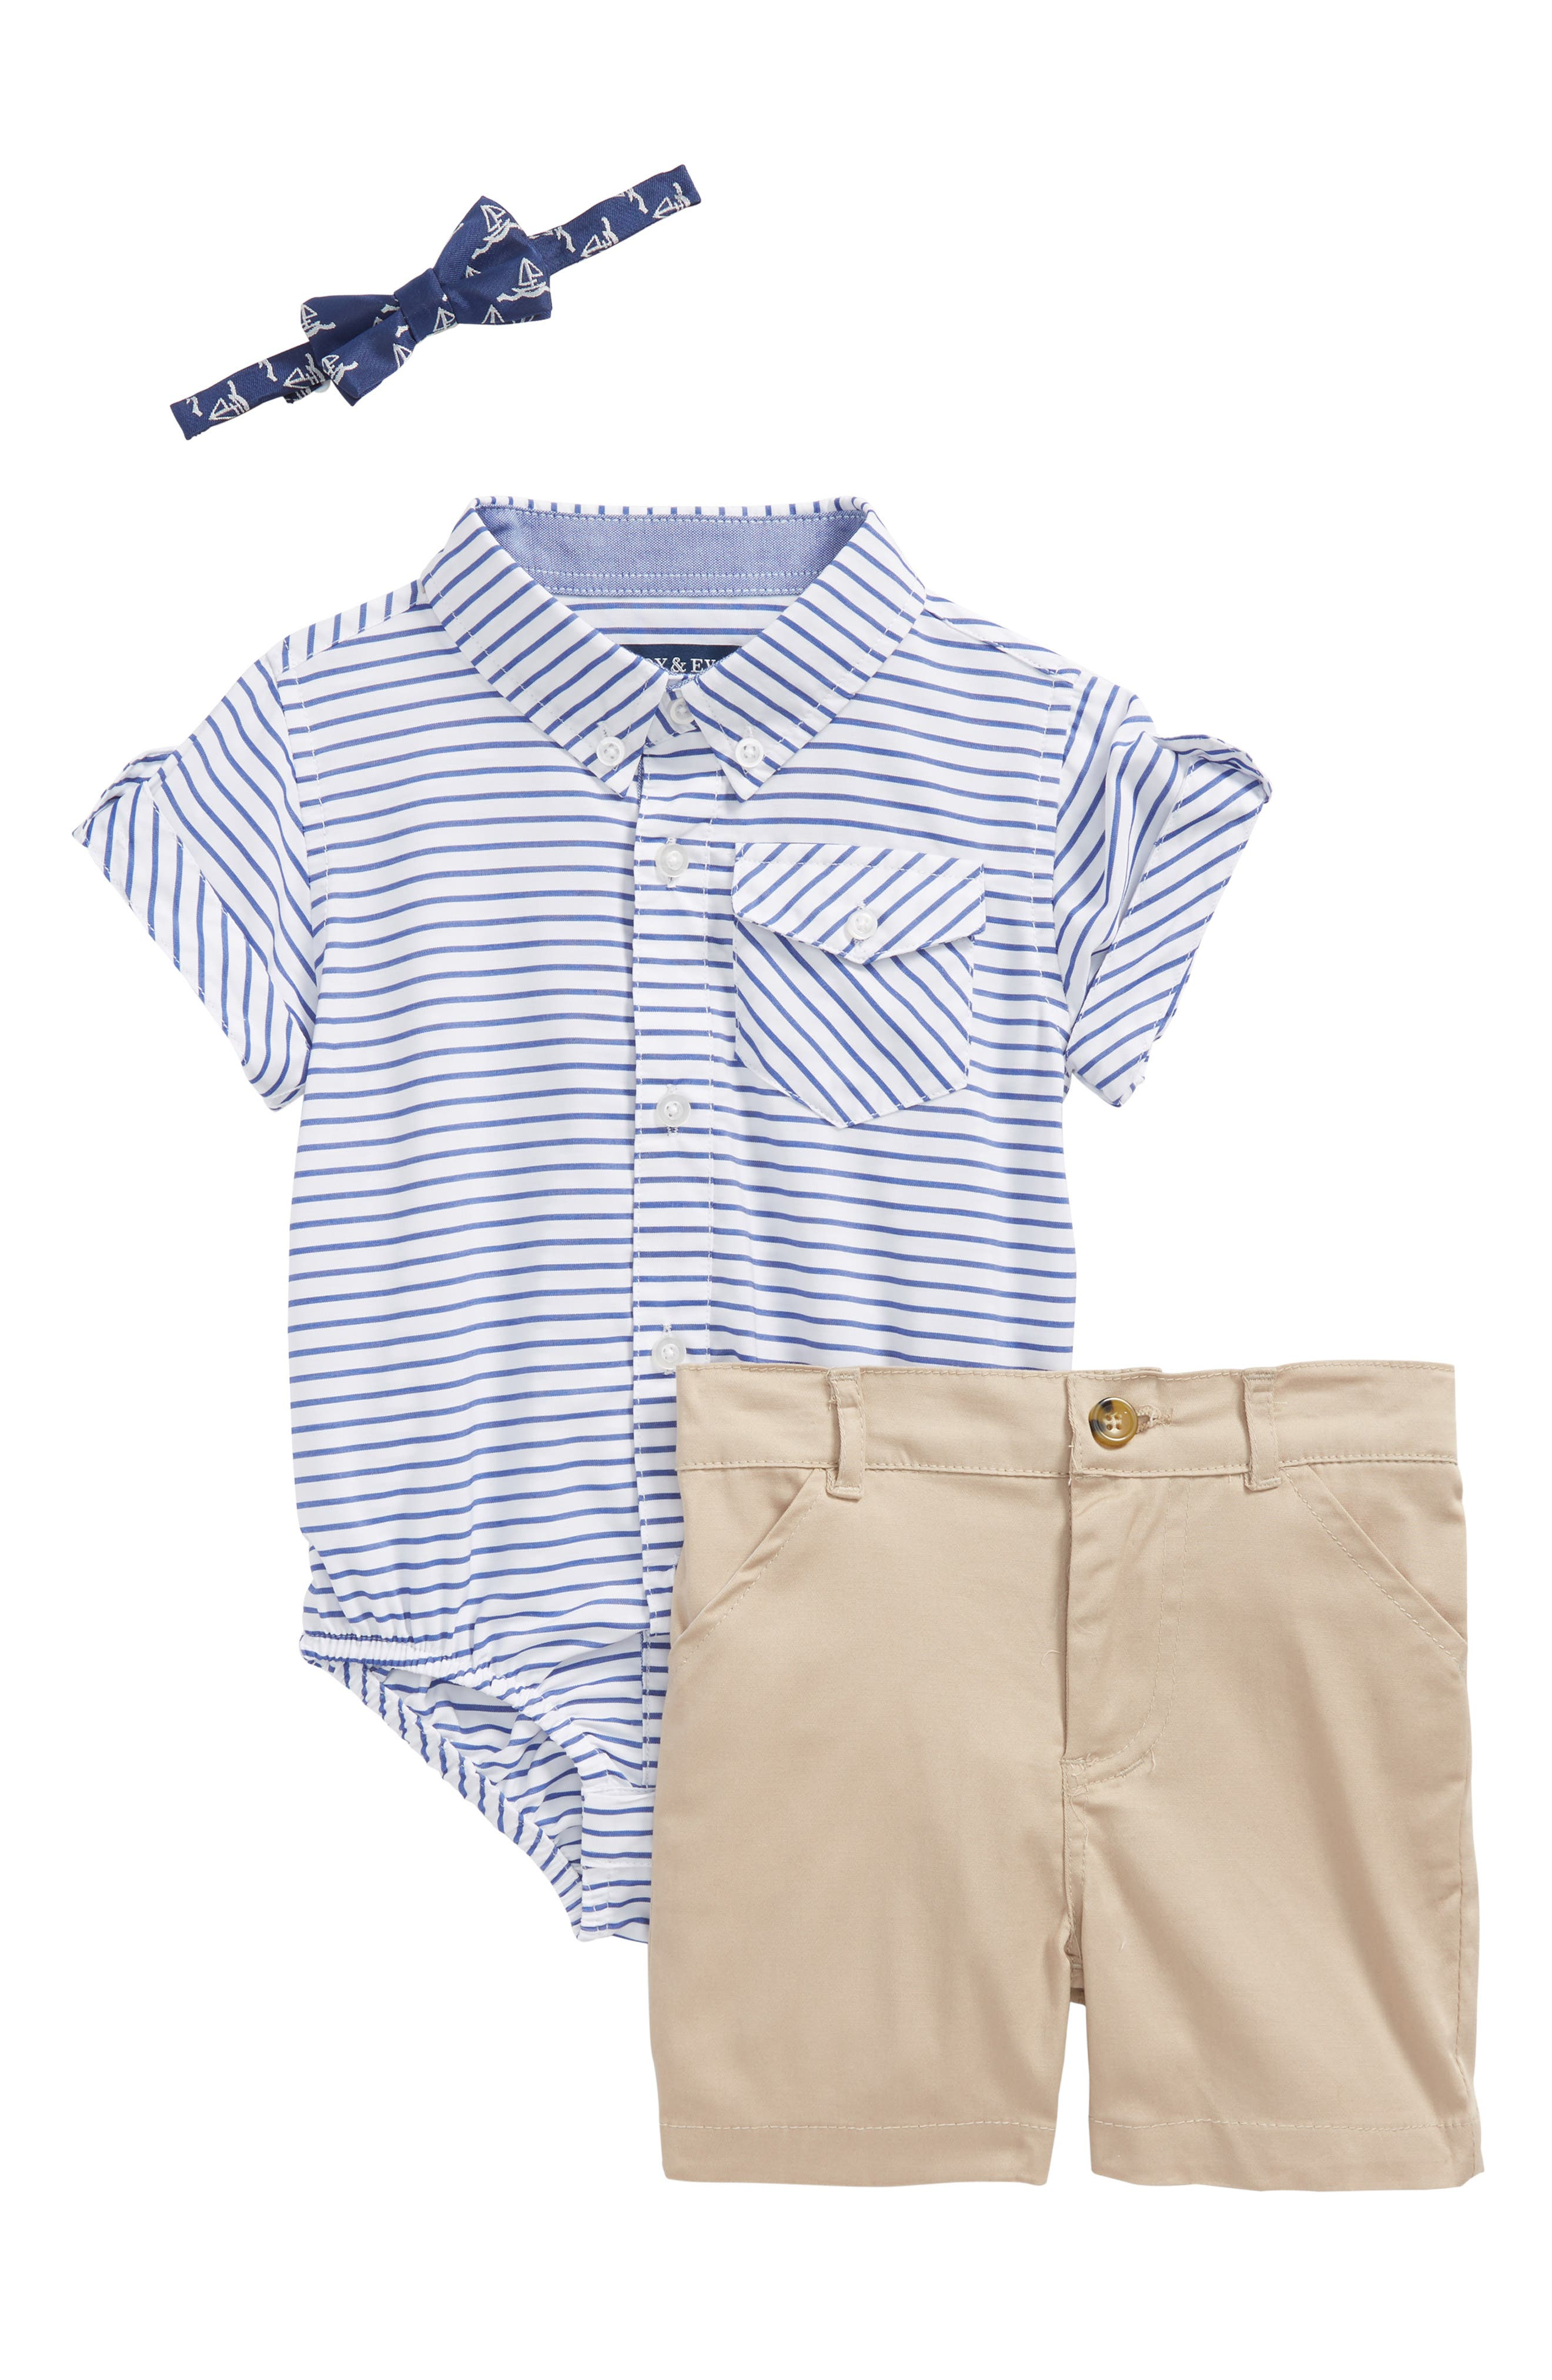 Andy & Evan Shirtzie, Bow Tie & Shorts Set (Baby Boys)